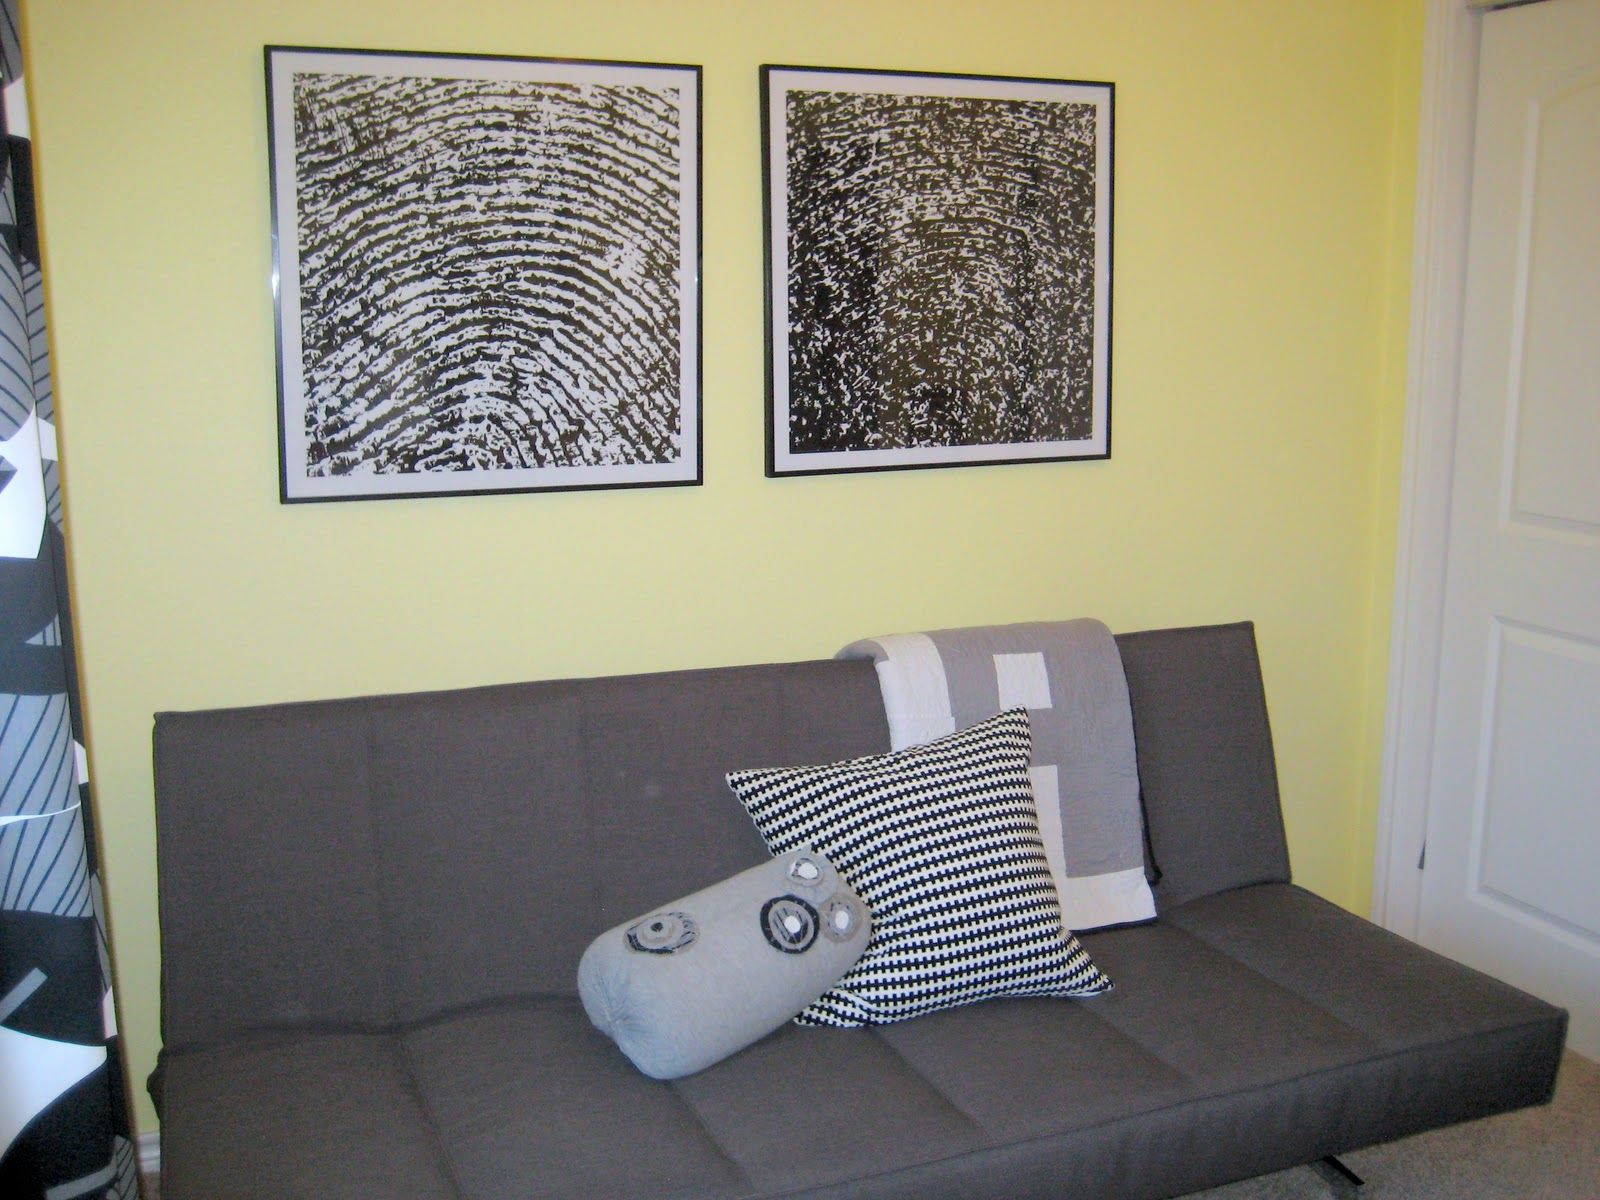 73: Giant Framed Thumbprints | Artwork, Craft and House